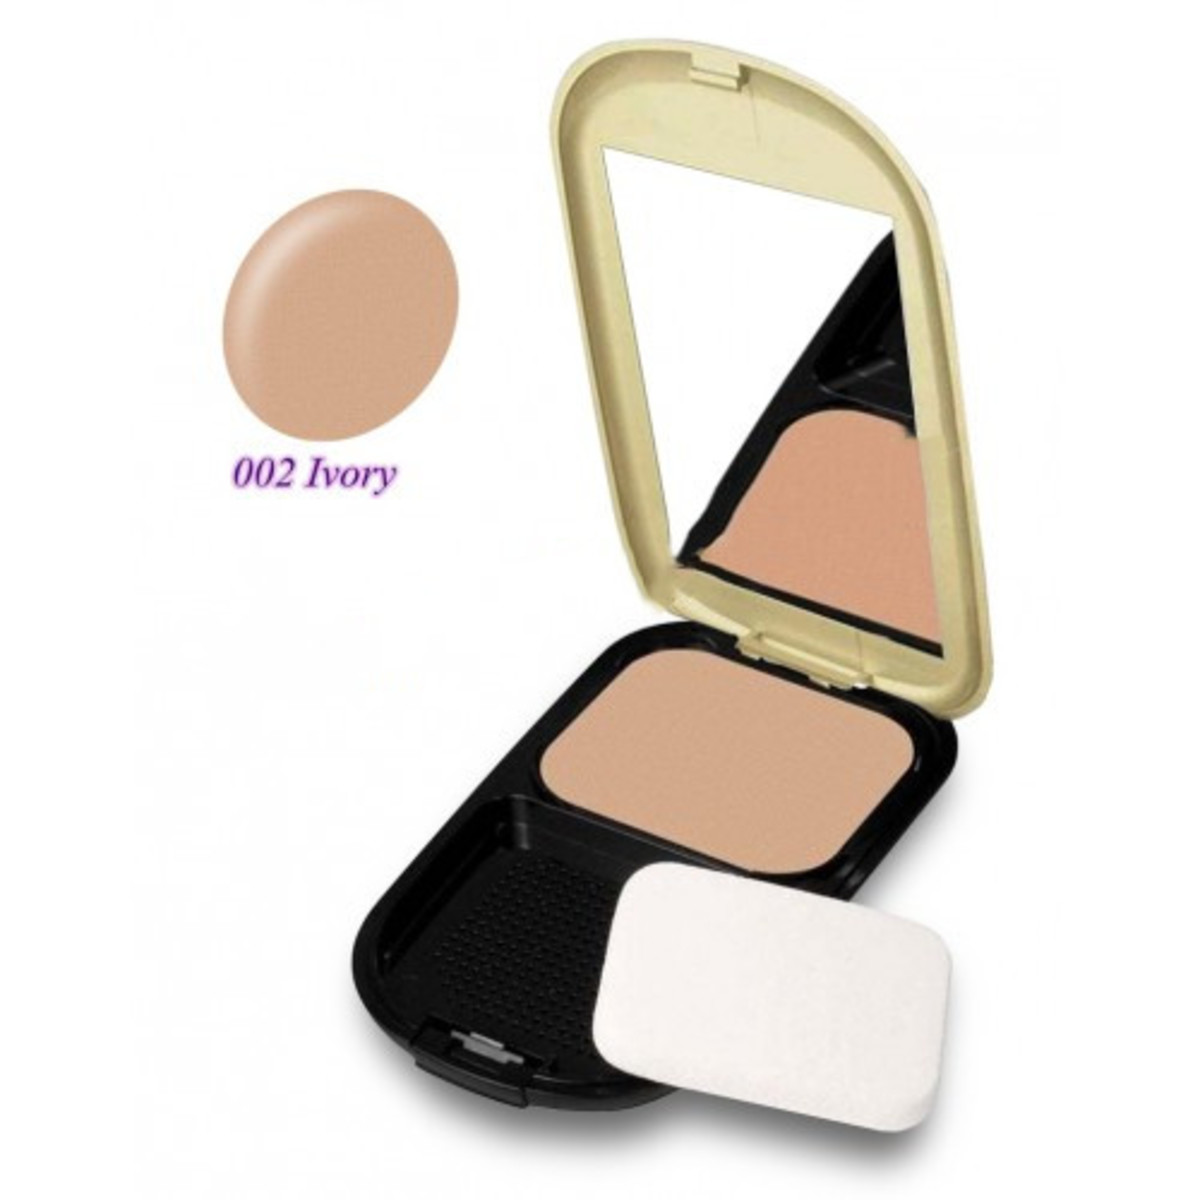 Facefinity Compact Foundation SPF15 (10g) #002 Ivory